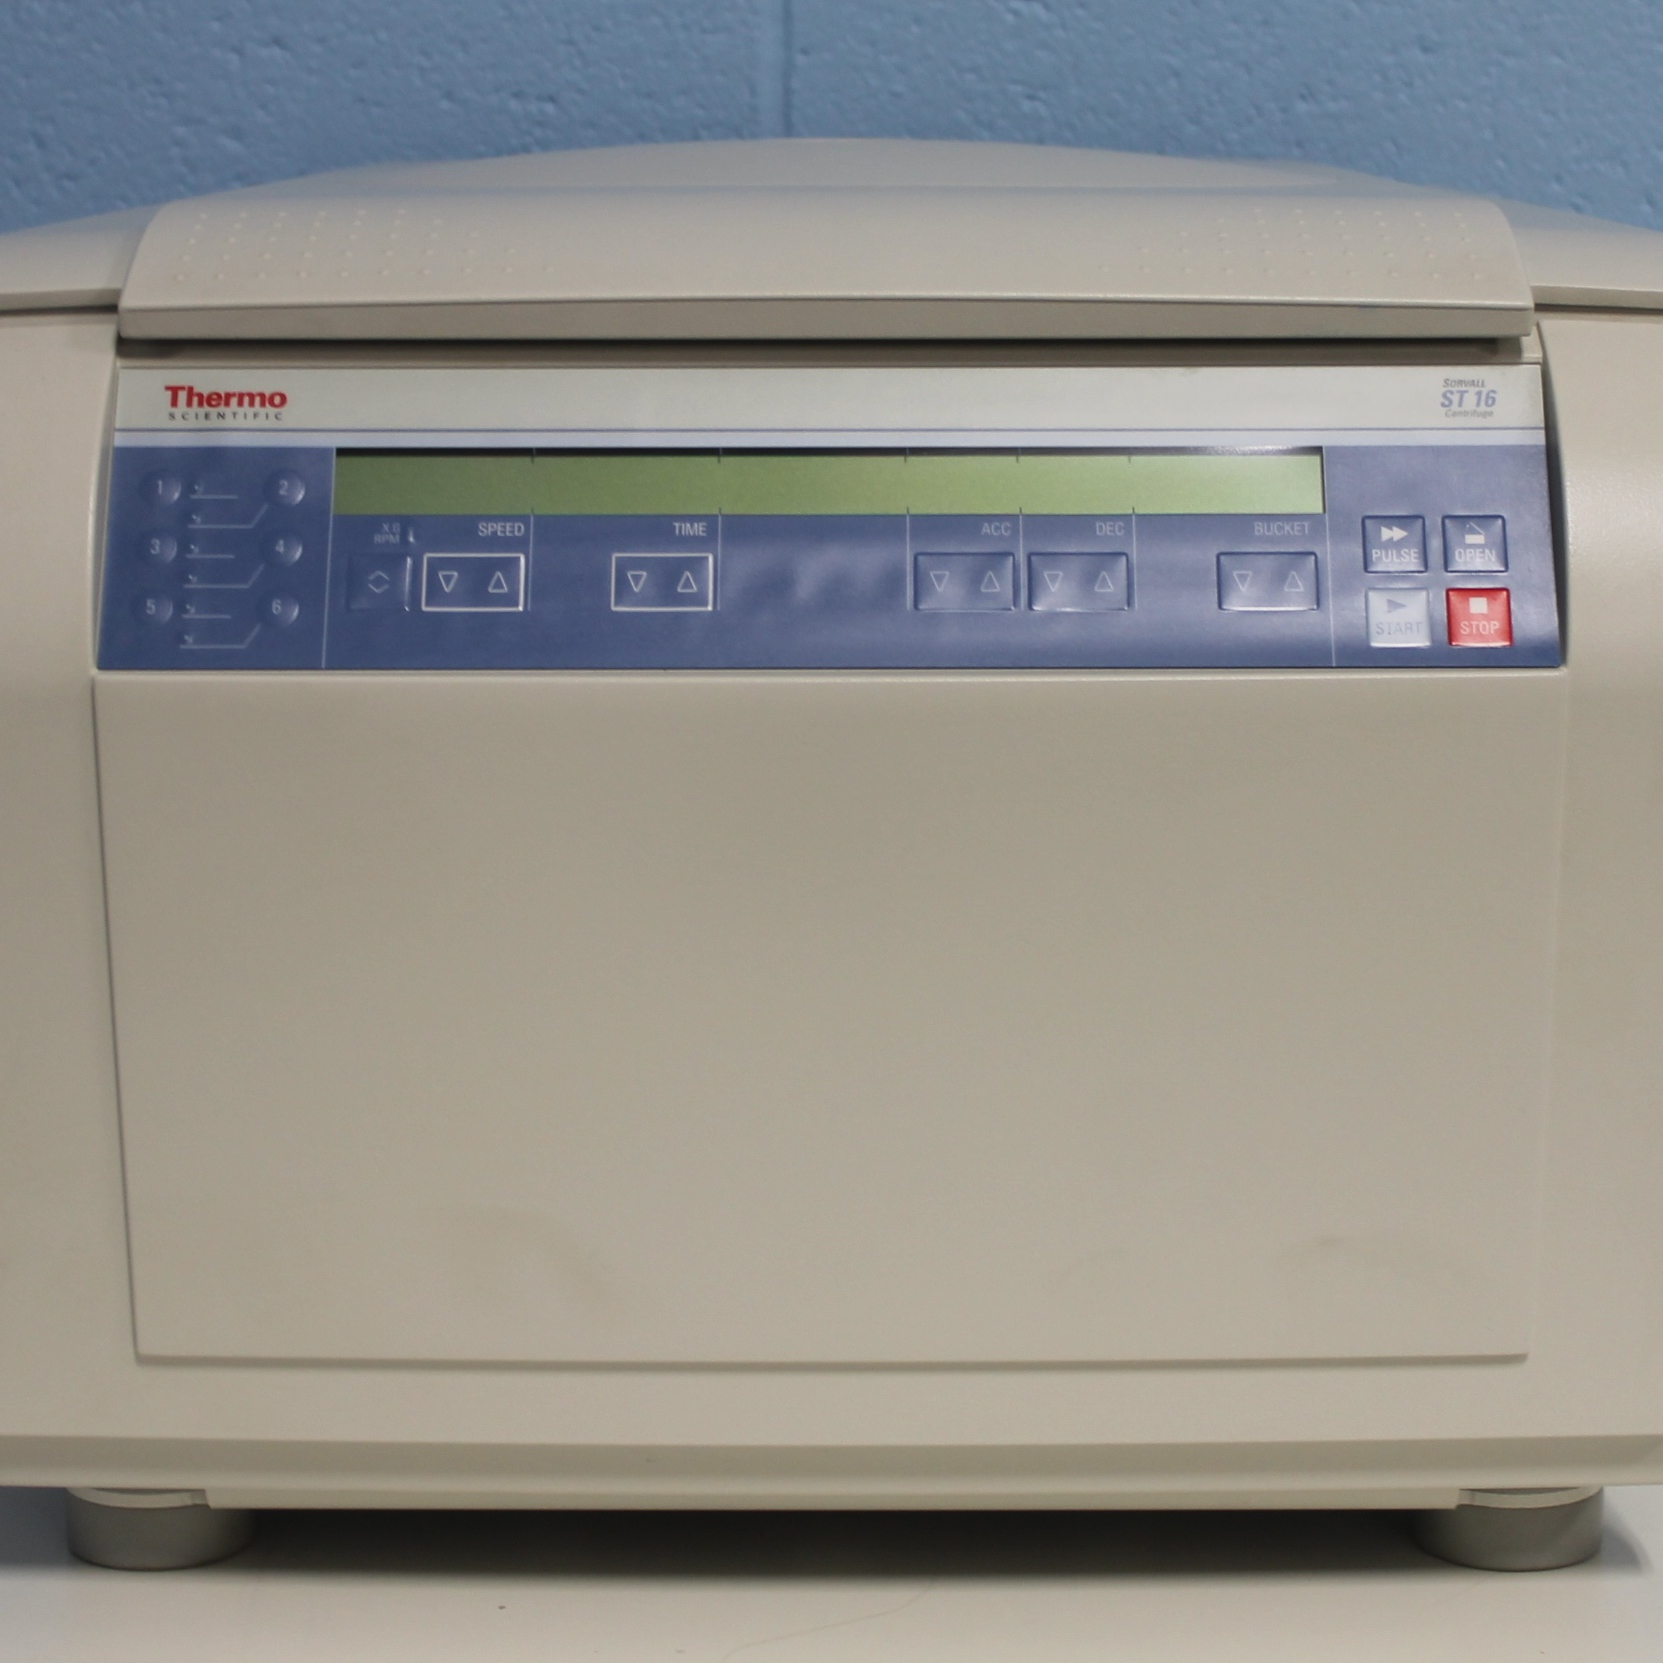 Sorvall ST16 Benchtop Centrifuge CAT #75004241 Name